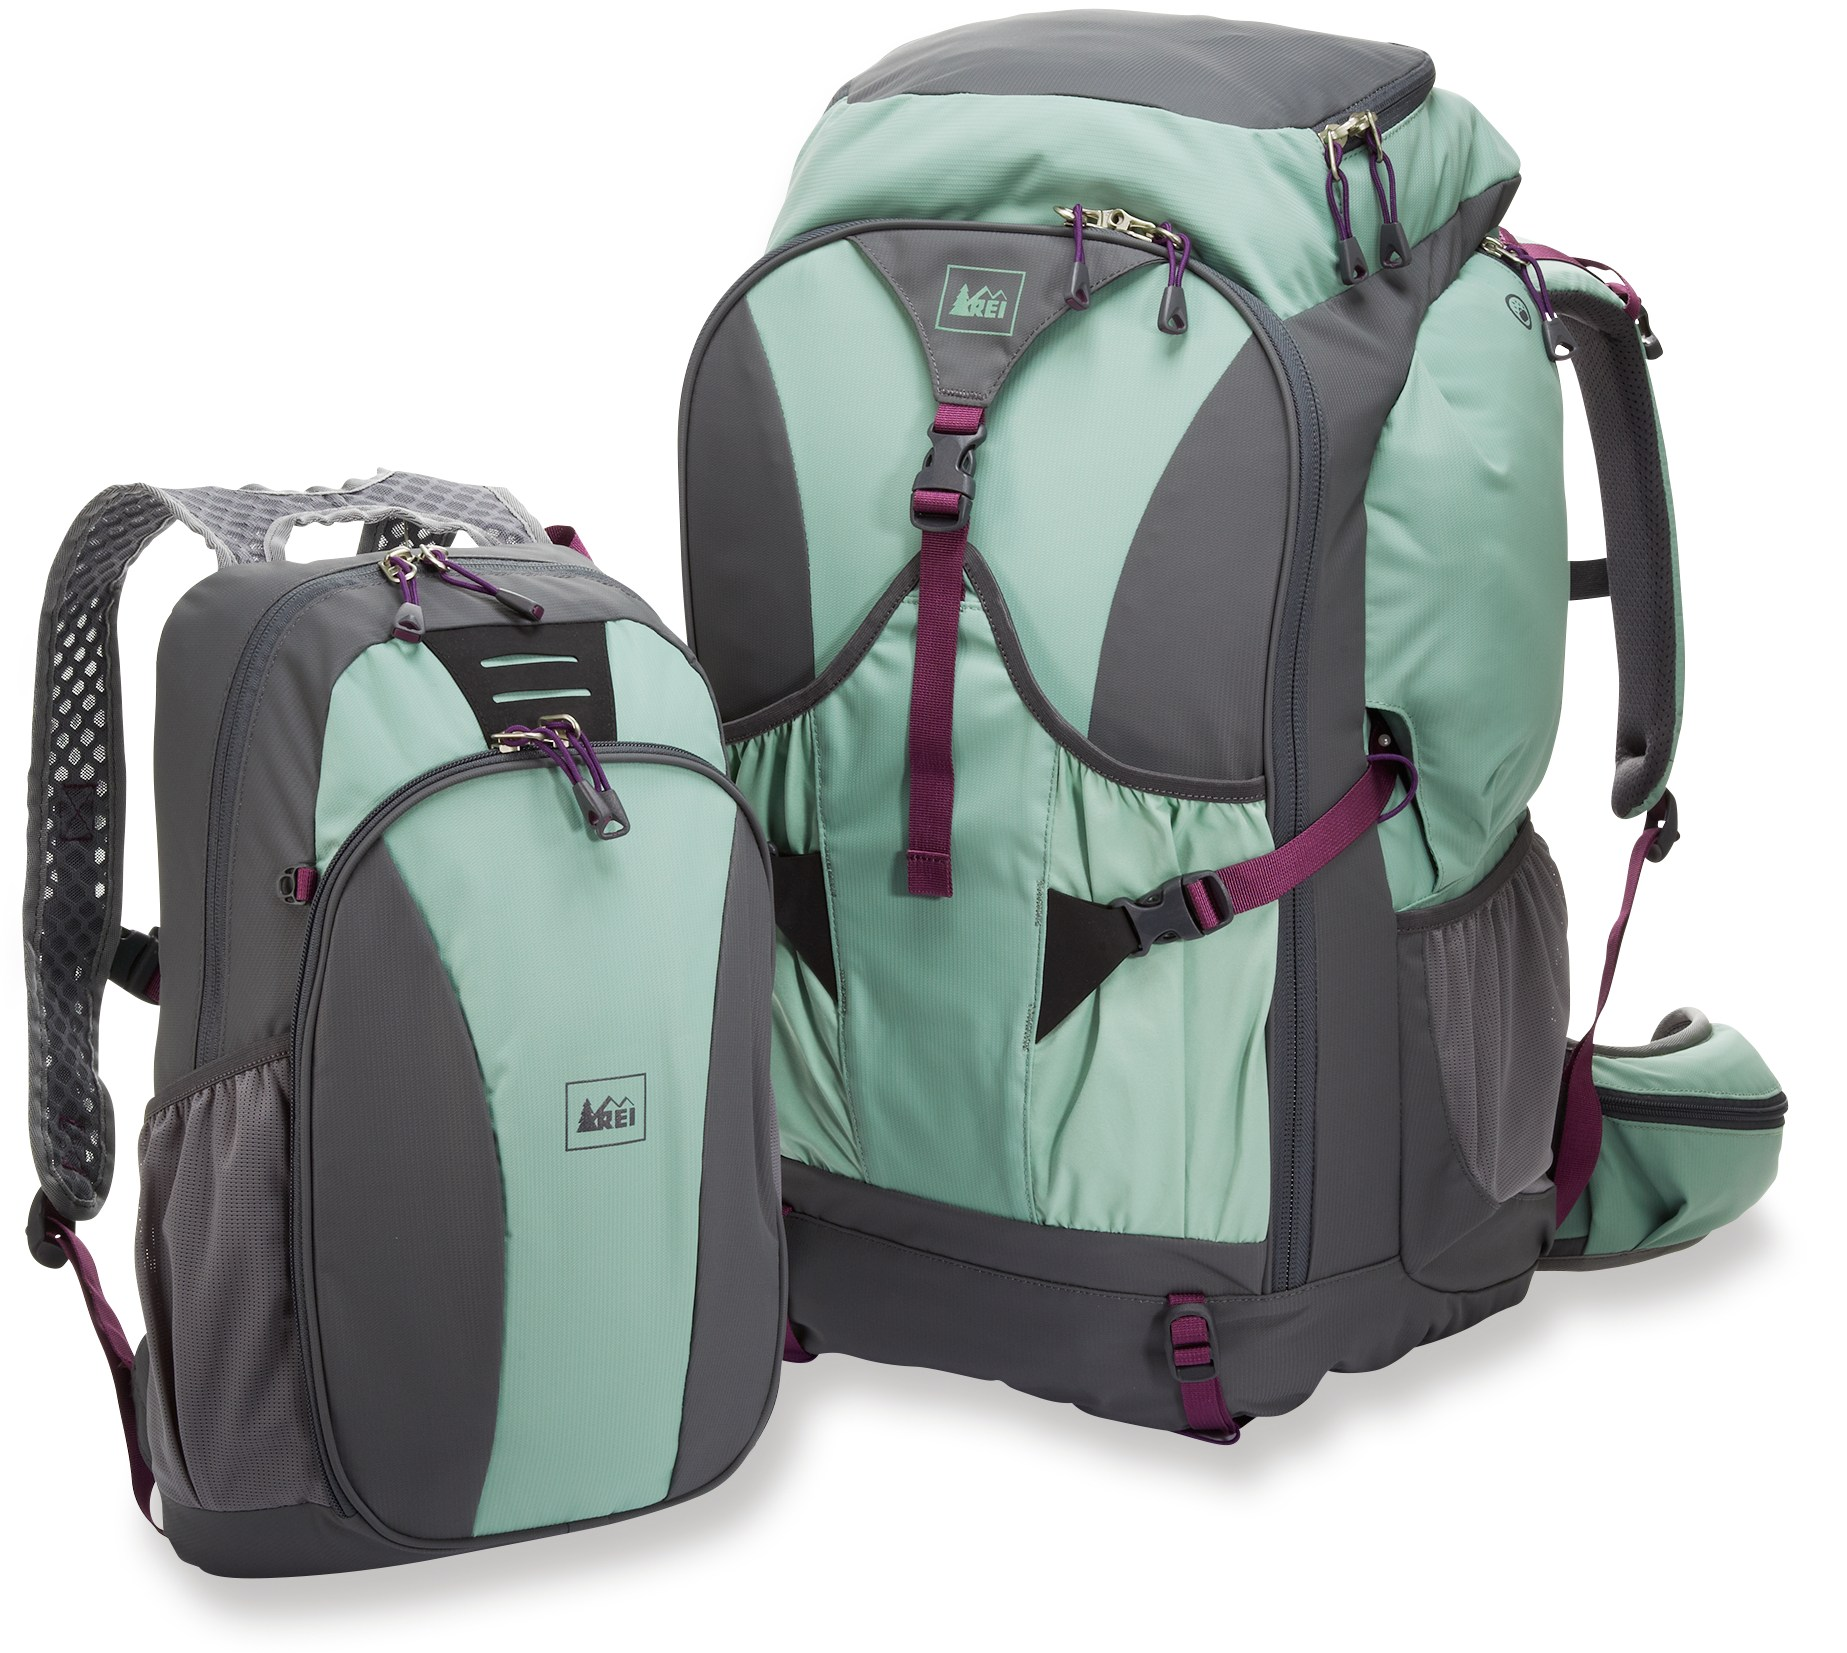 Best Small Travel Backpack OPq7T1ml